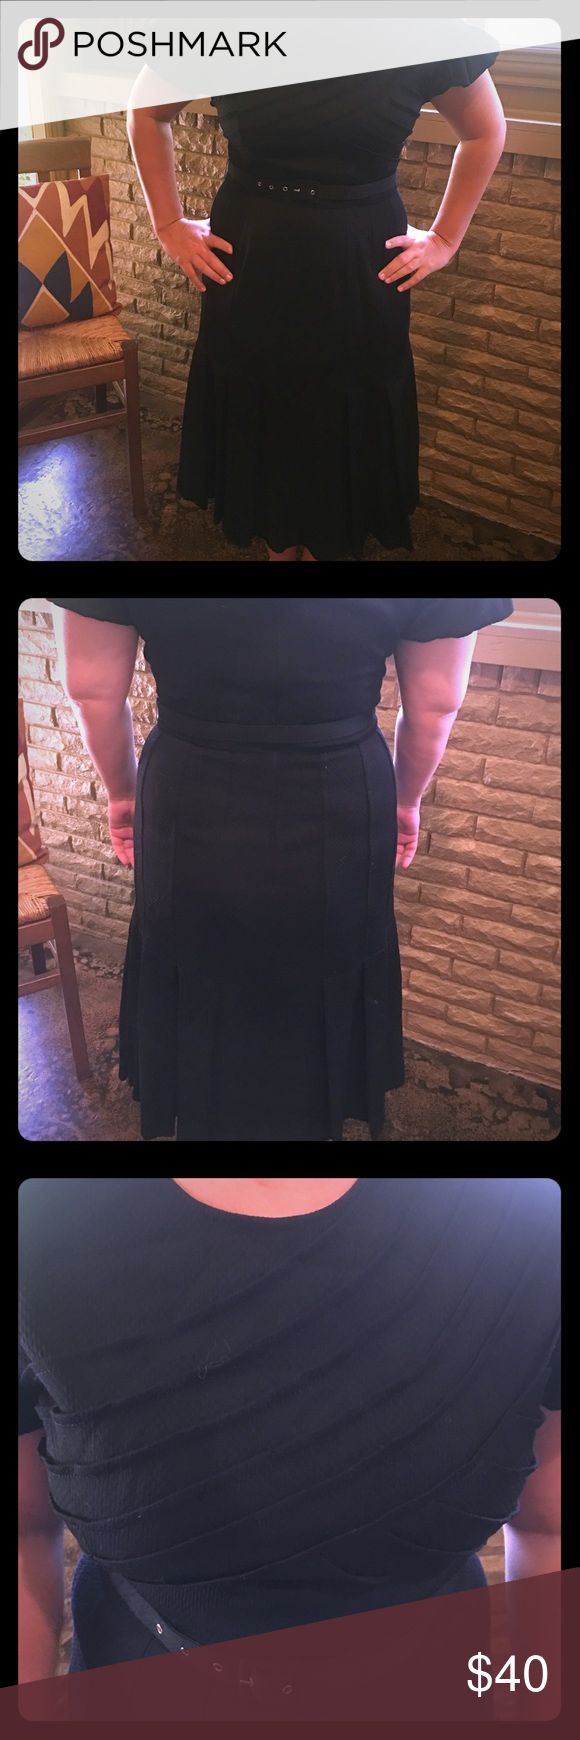 Tracy Reese Dress Black 1940s inspired dress with belt by Tracy Reese.  Beautiful and comfortable! Tracy Reese Dresses